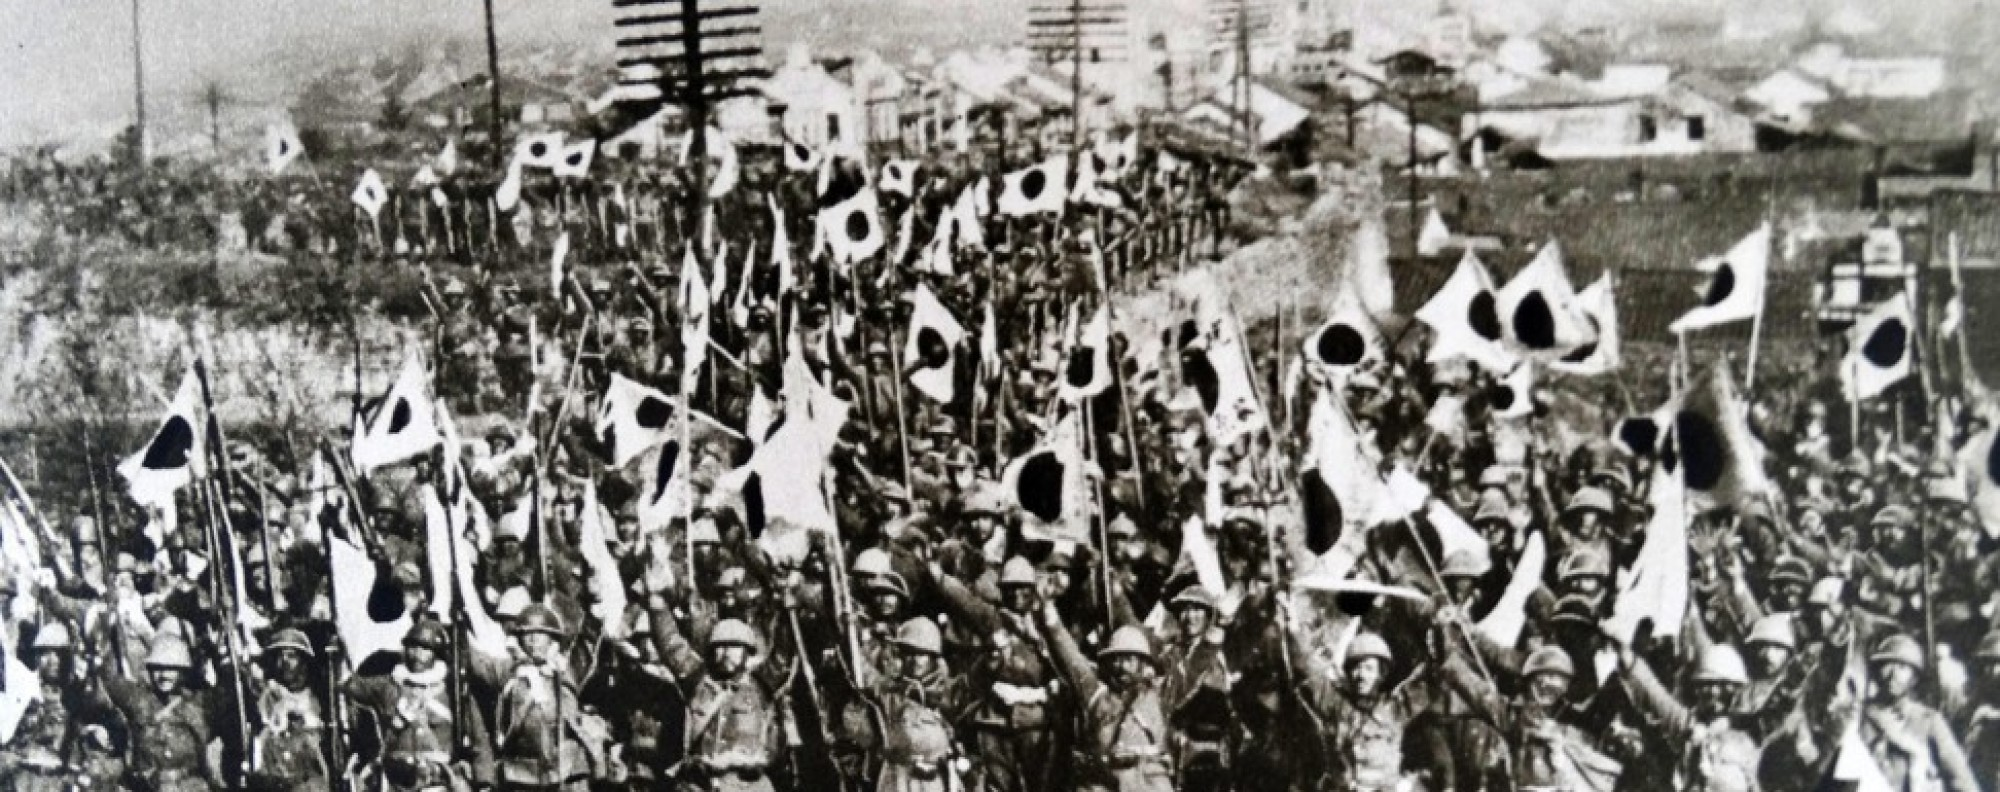 Japanese troops in Nanking after the city's conquest in 1937. Picture: Alamy